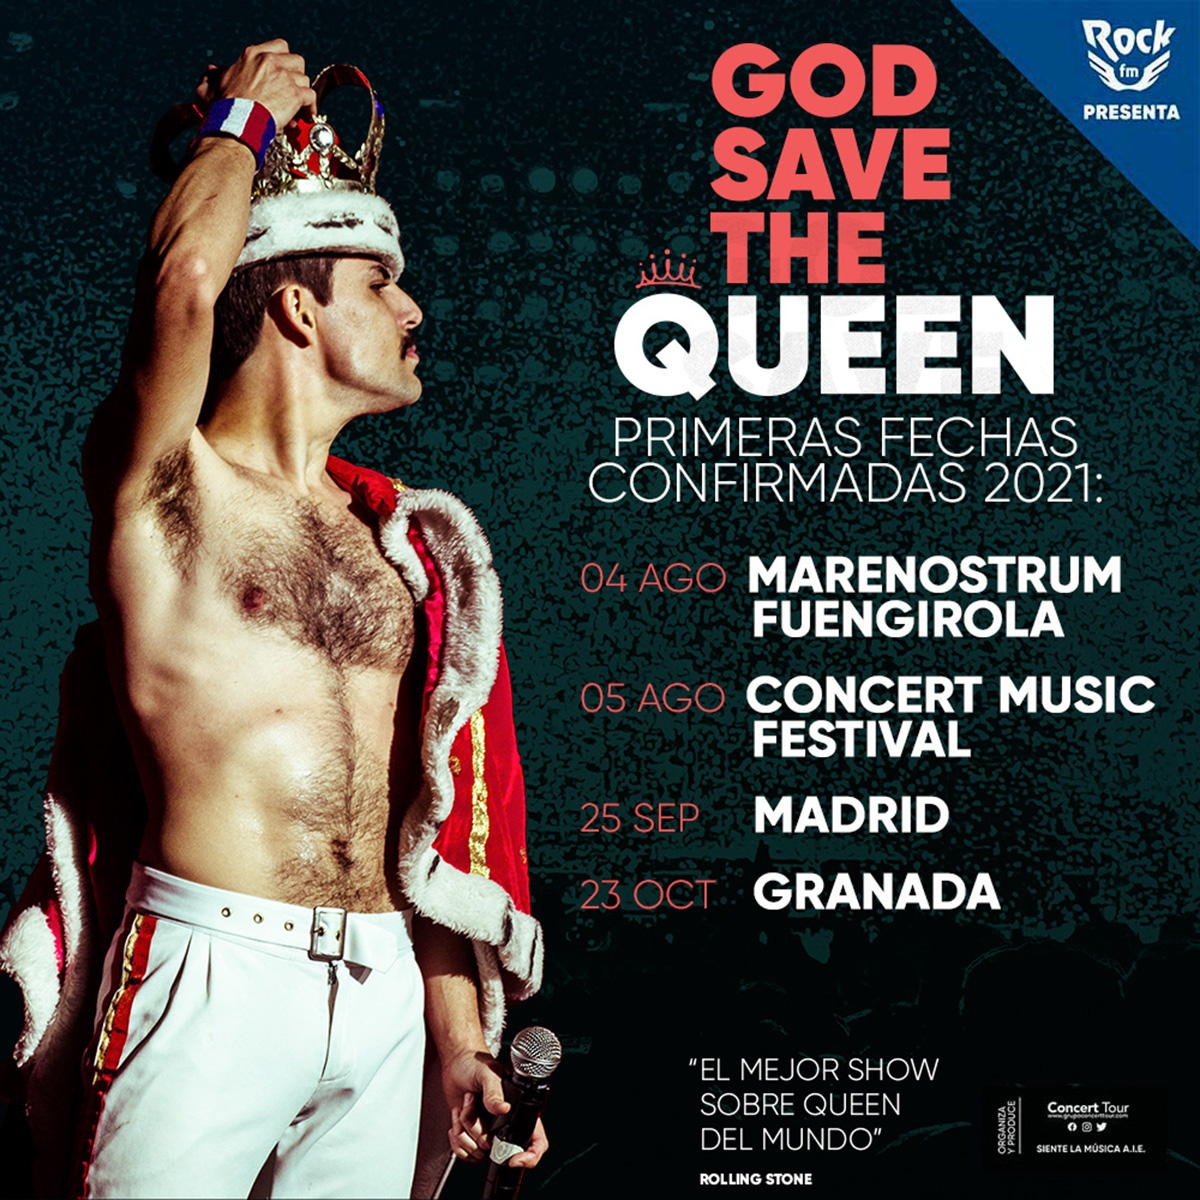 Los conciertos de la gira Champions of the World de God Save The Queen en Chiclana, Fuengirola, Granada y Madrid se posponen para el próximo año.